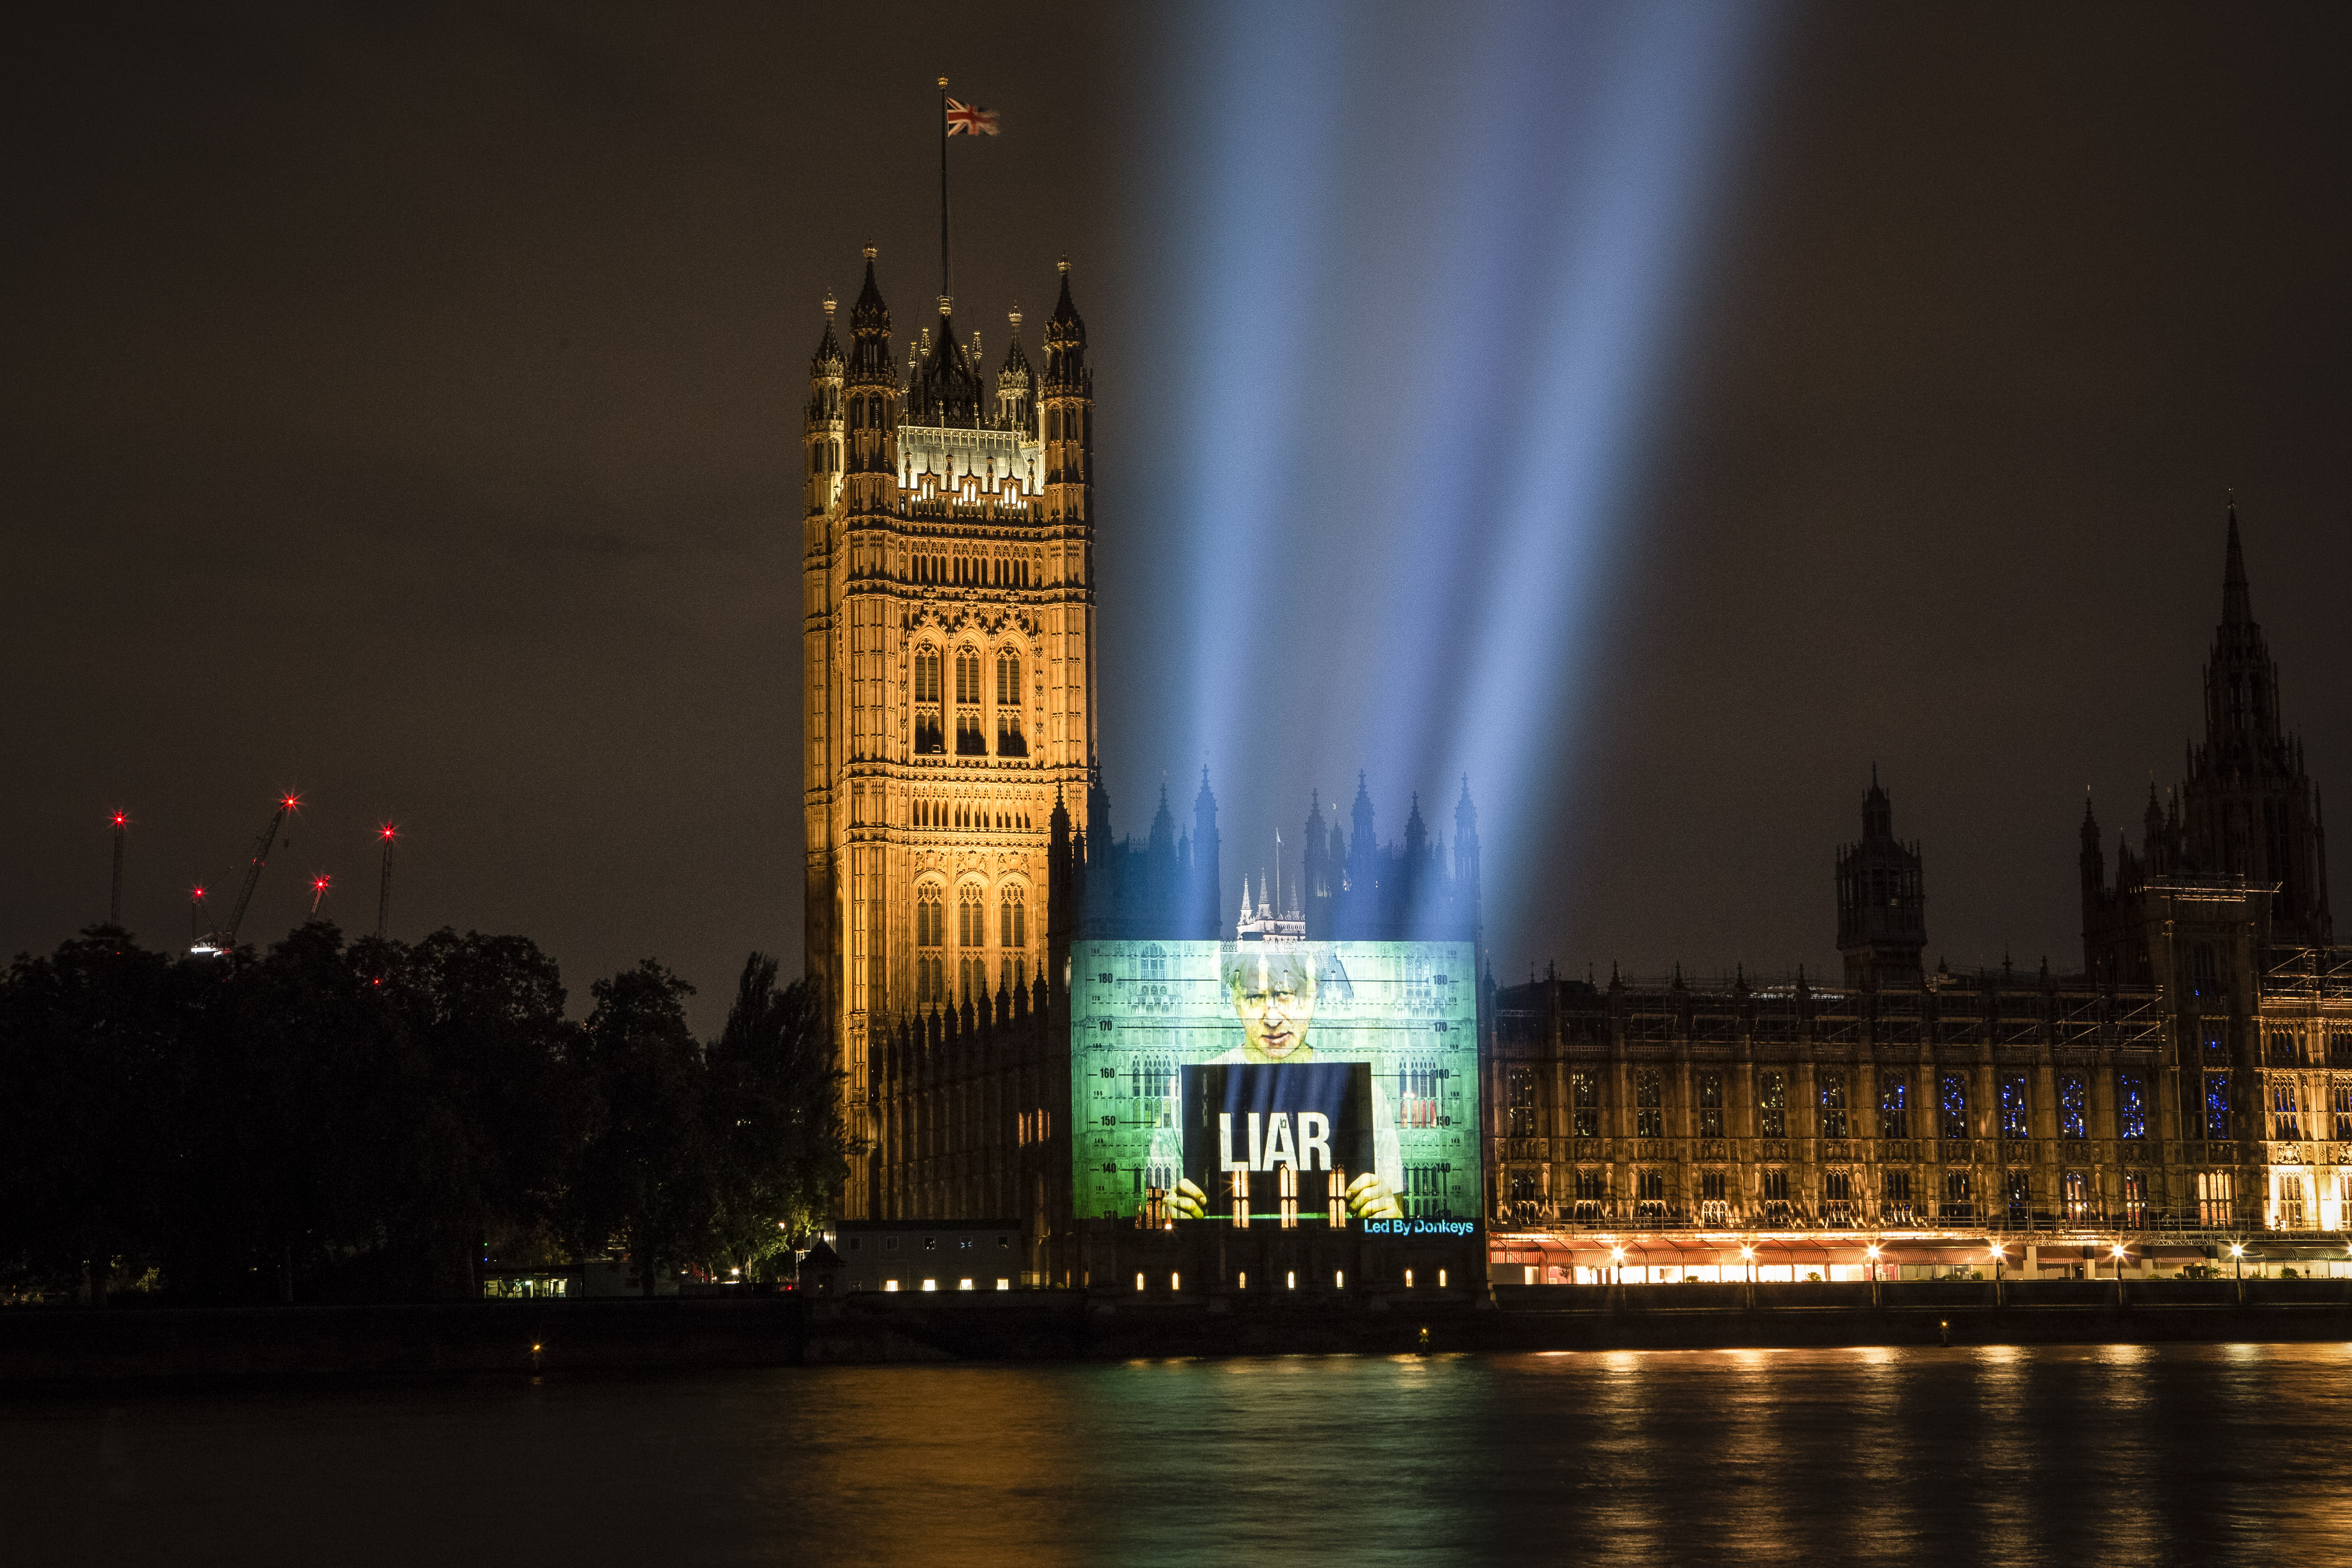 The projection on the side of Parliament